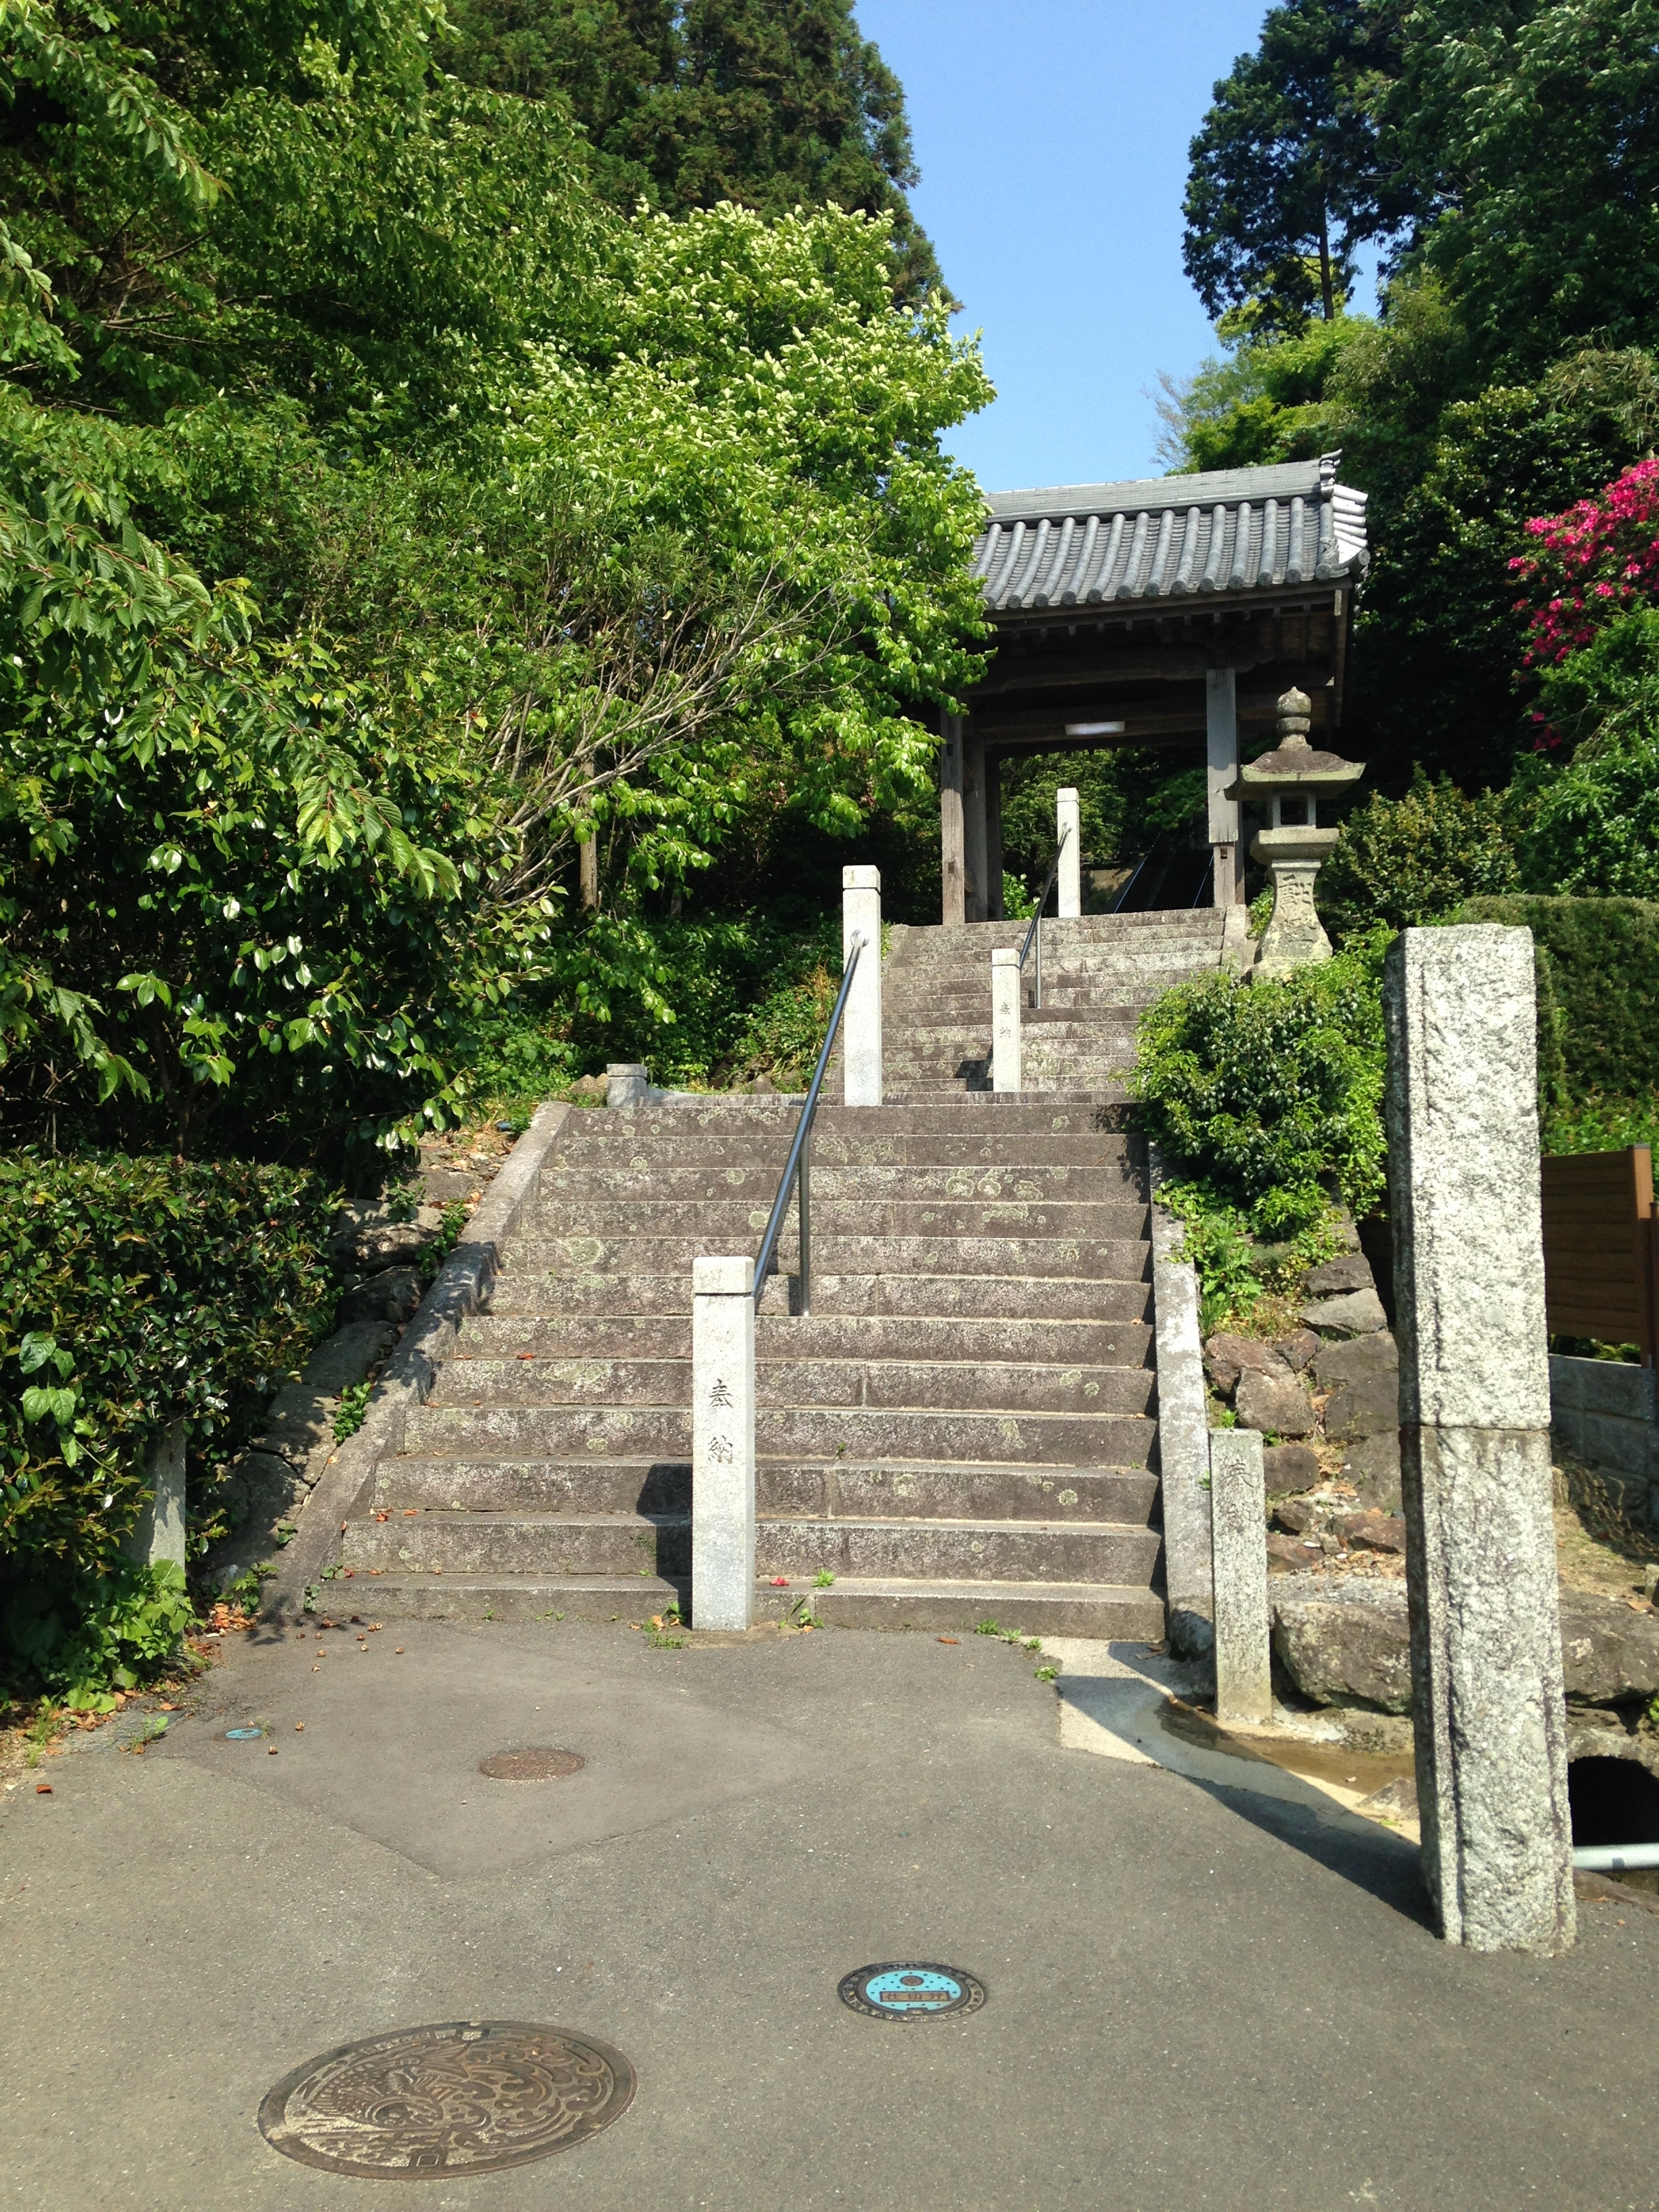 File Stairs In Front Of Gate Of Chinkokuji Temple Jpg Wikimedia